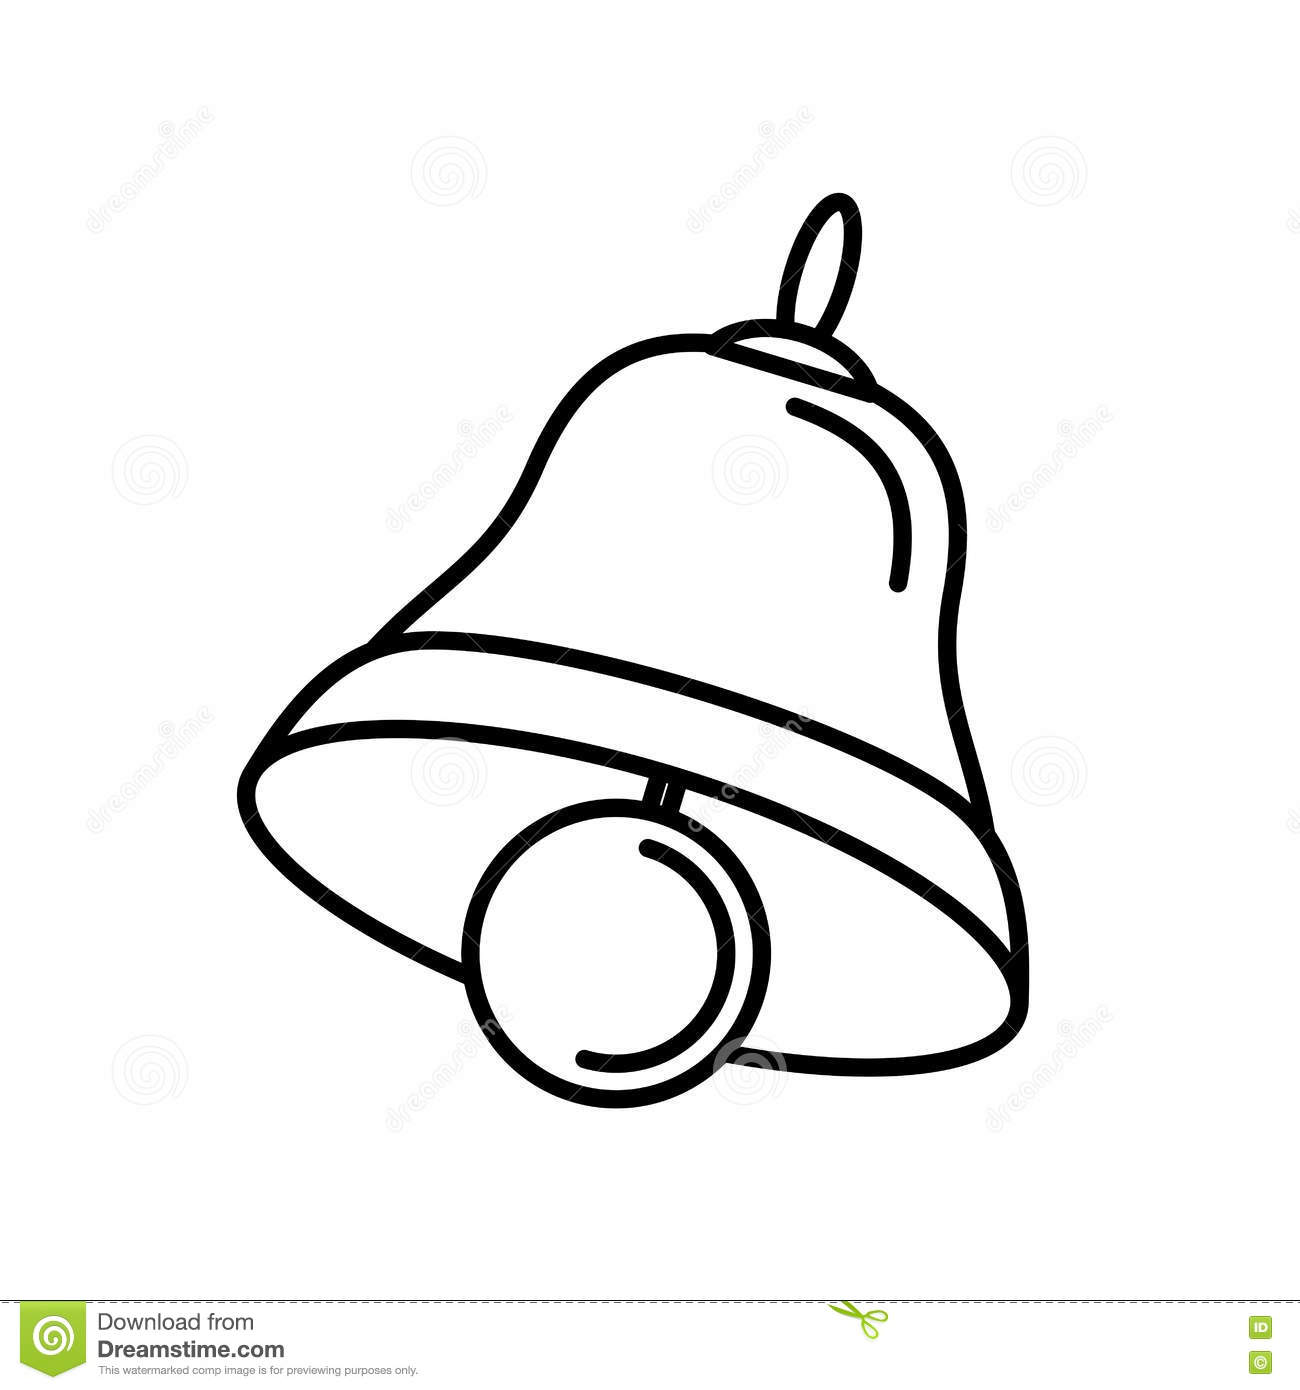 Merry Christmas Bell Isolated Icon Stock Vector - Illustration of symbol, gingerbread: 79041780